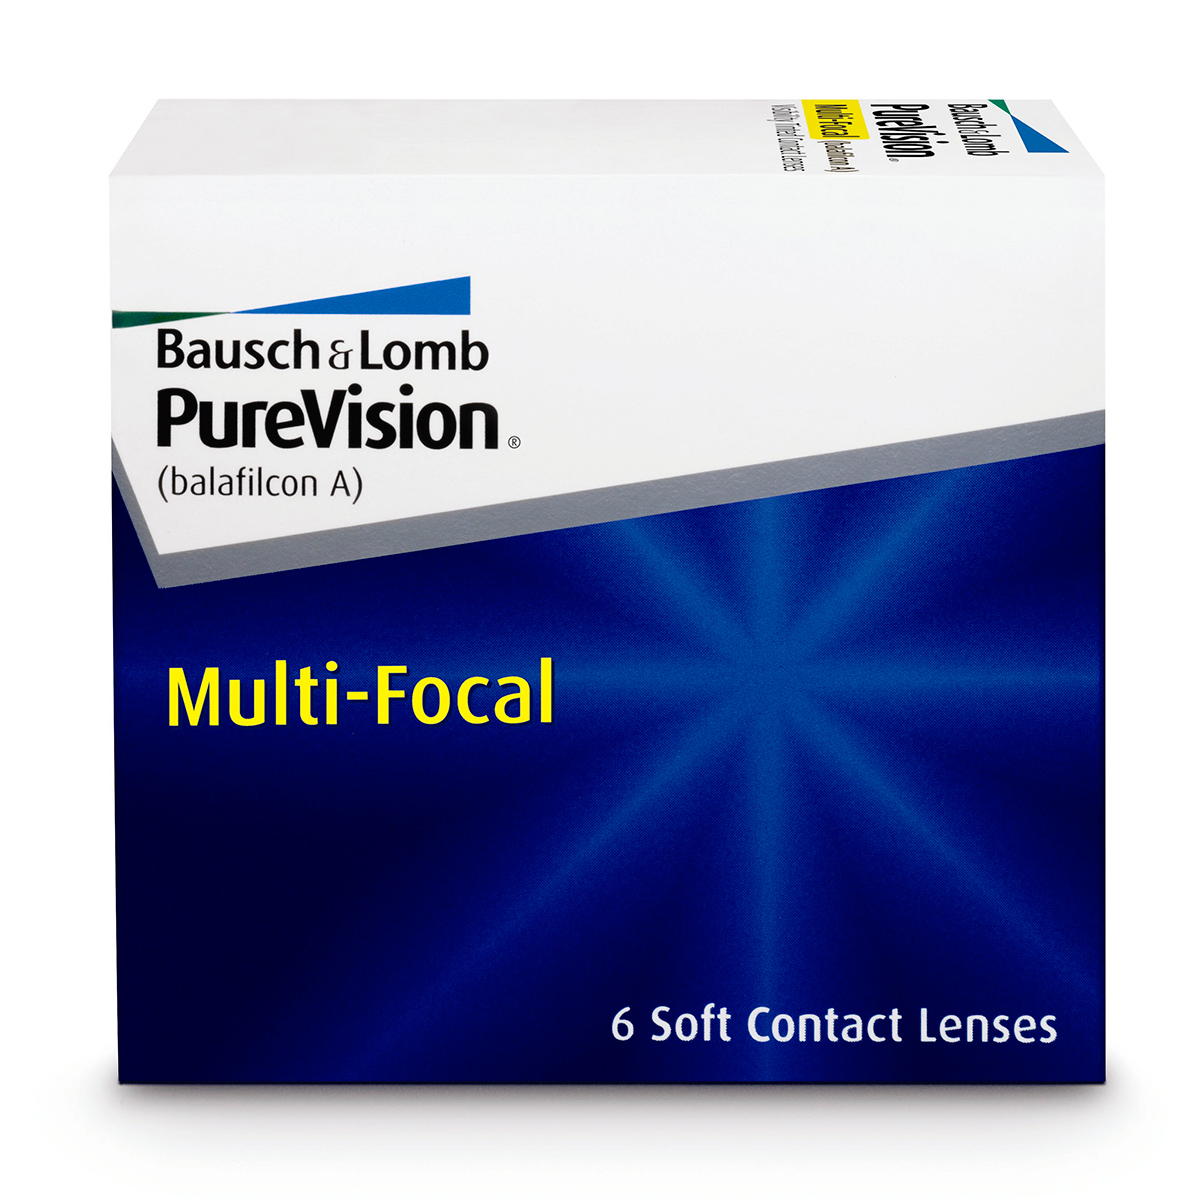 Pure Vision Multi-Focal